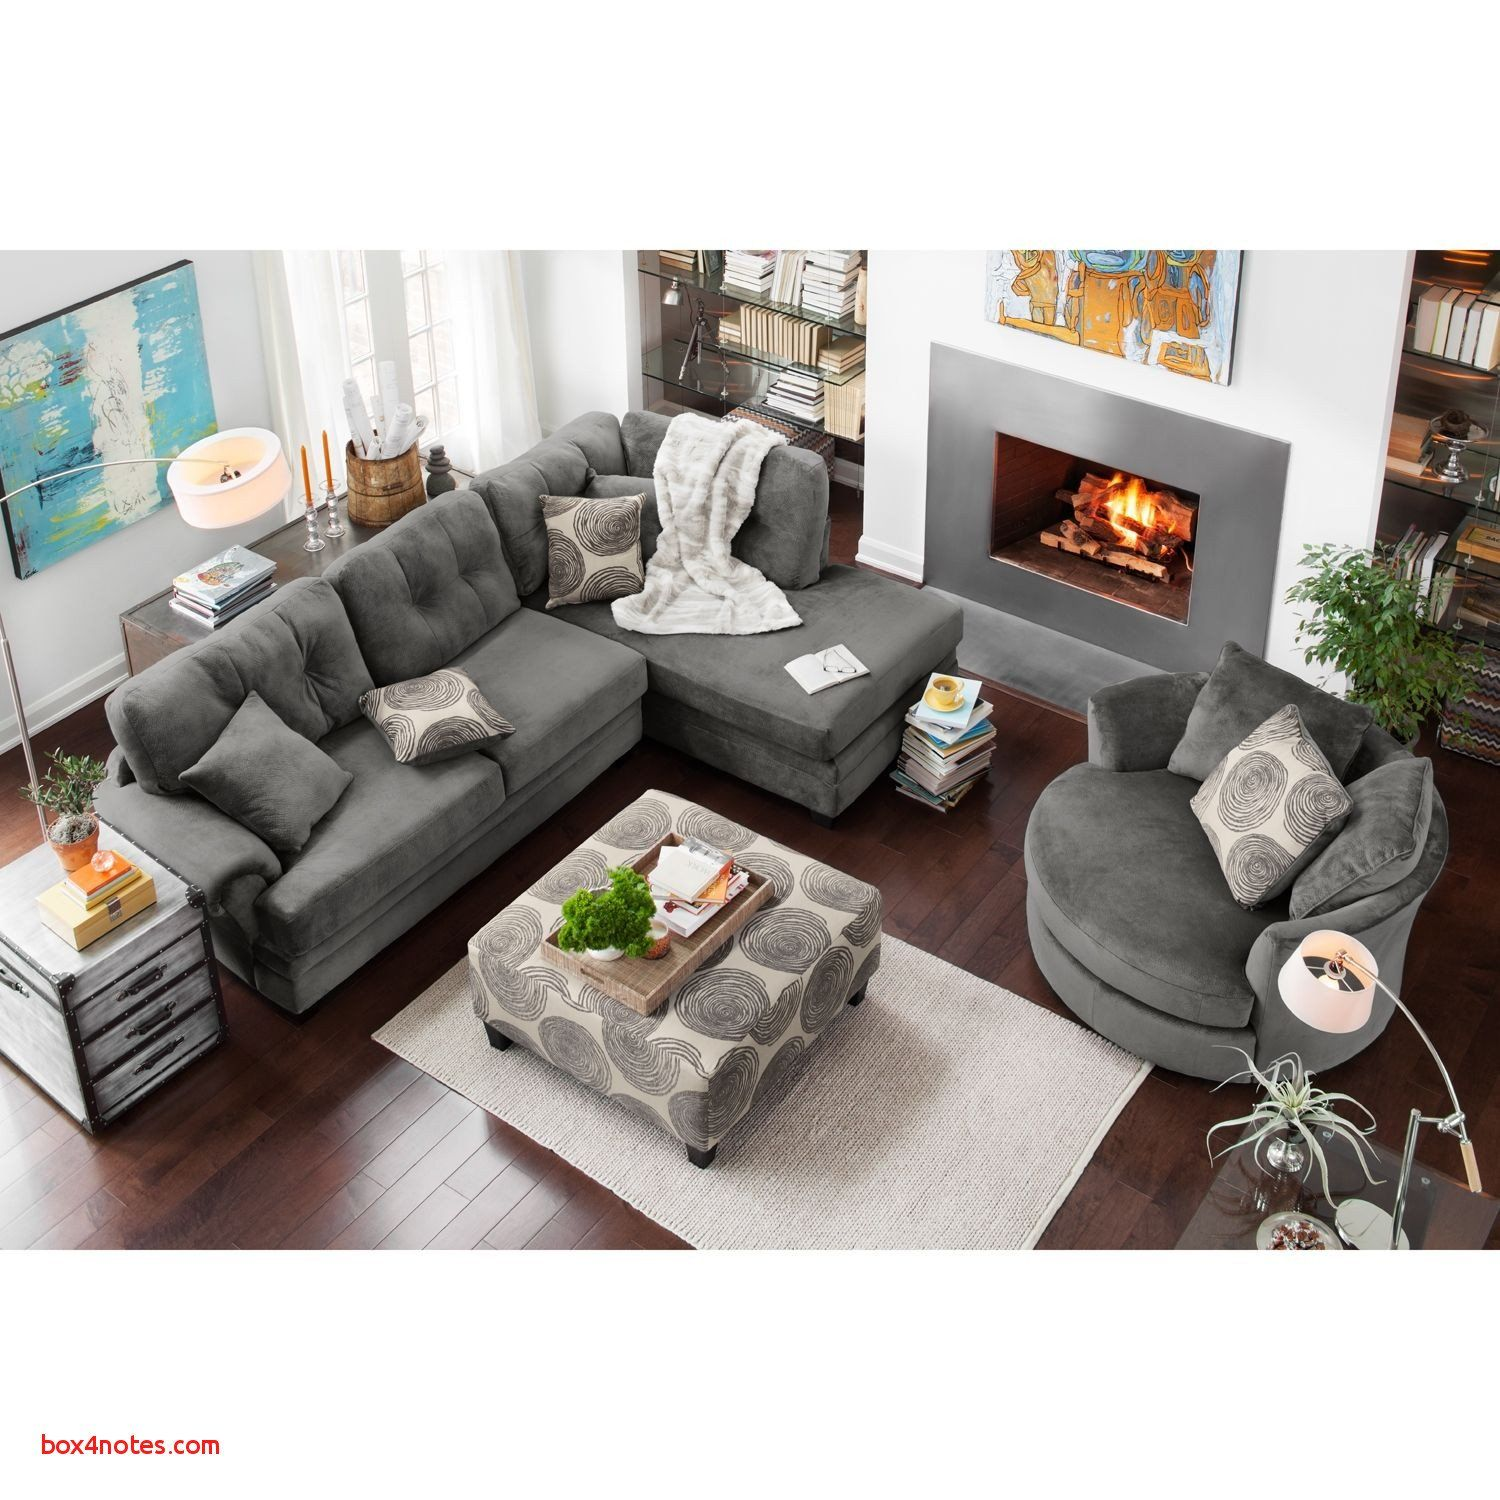 Living Room Without Sofa Fresh Fresh Living Room Without Sofa Just Chairs In 2020 Living Room Grey Livingroom Layout Farm House Living Room